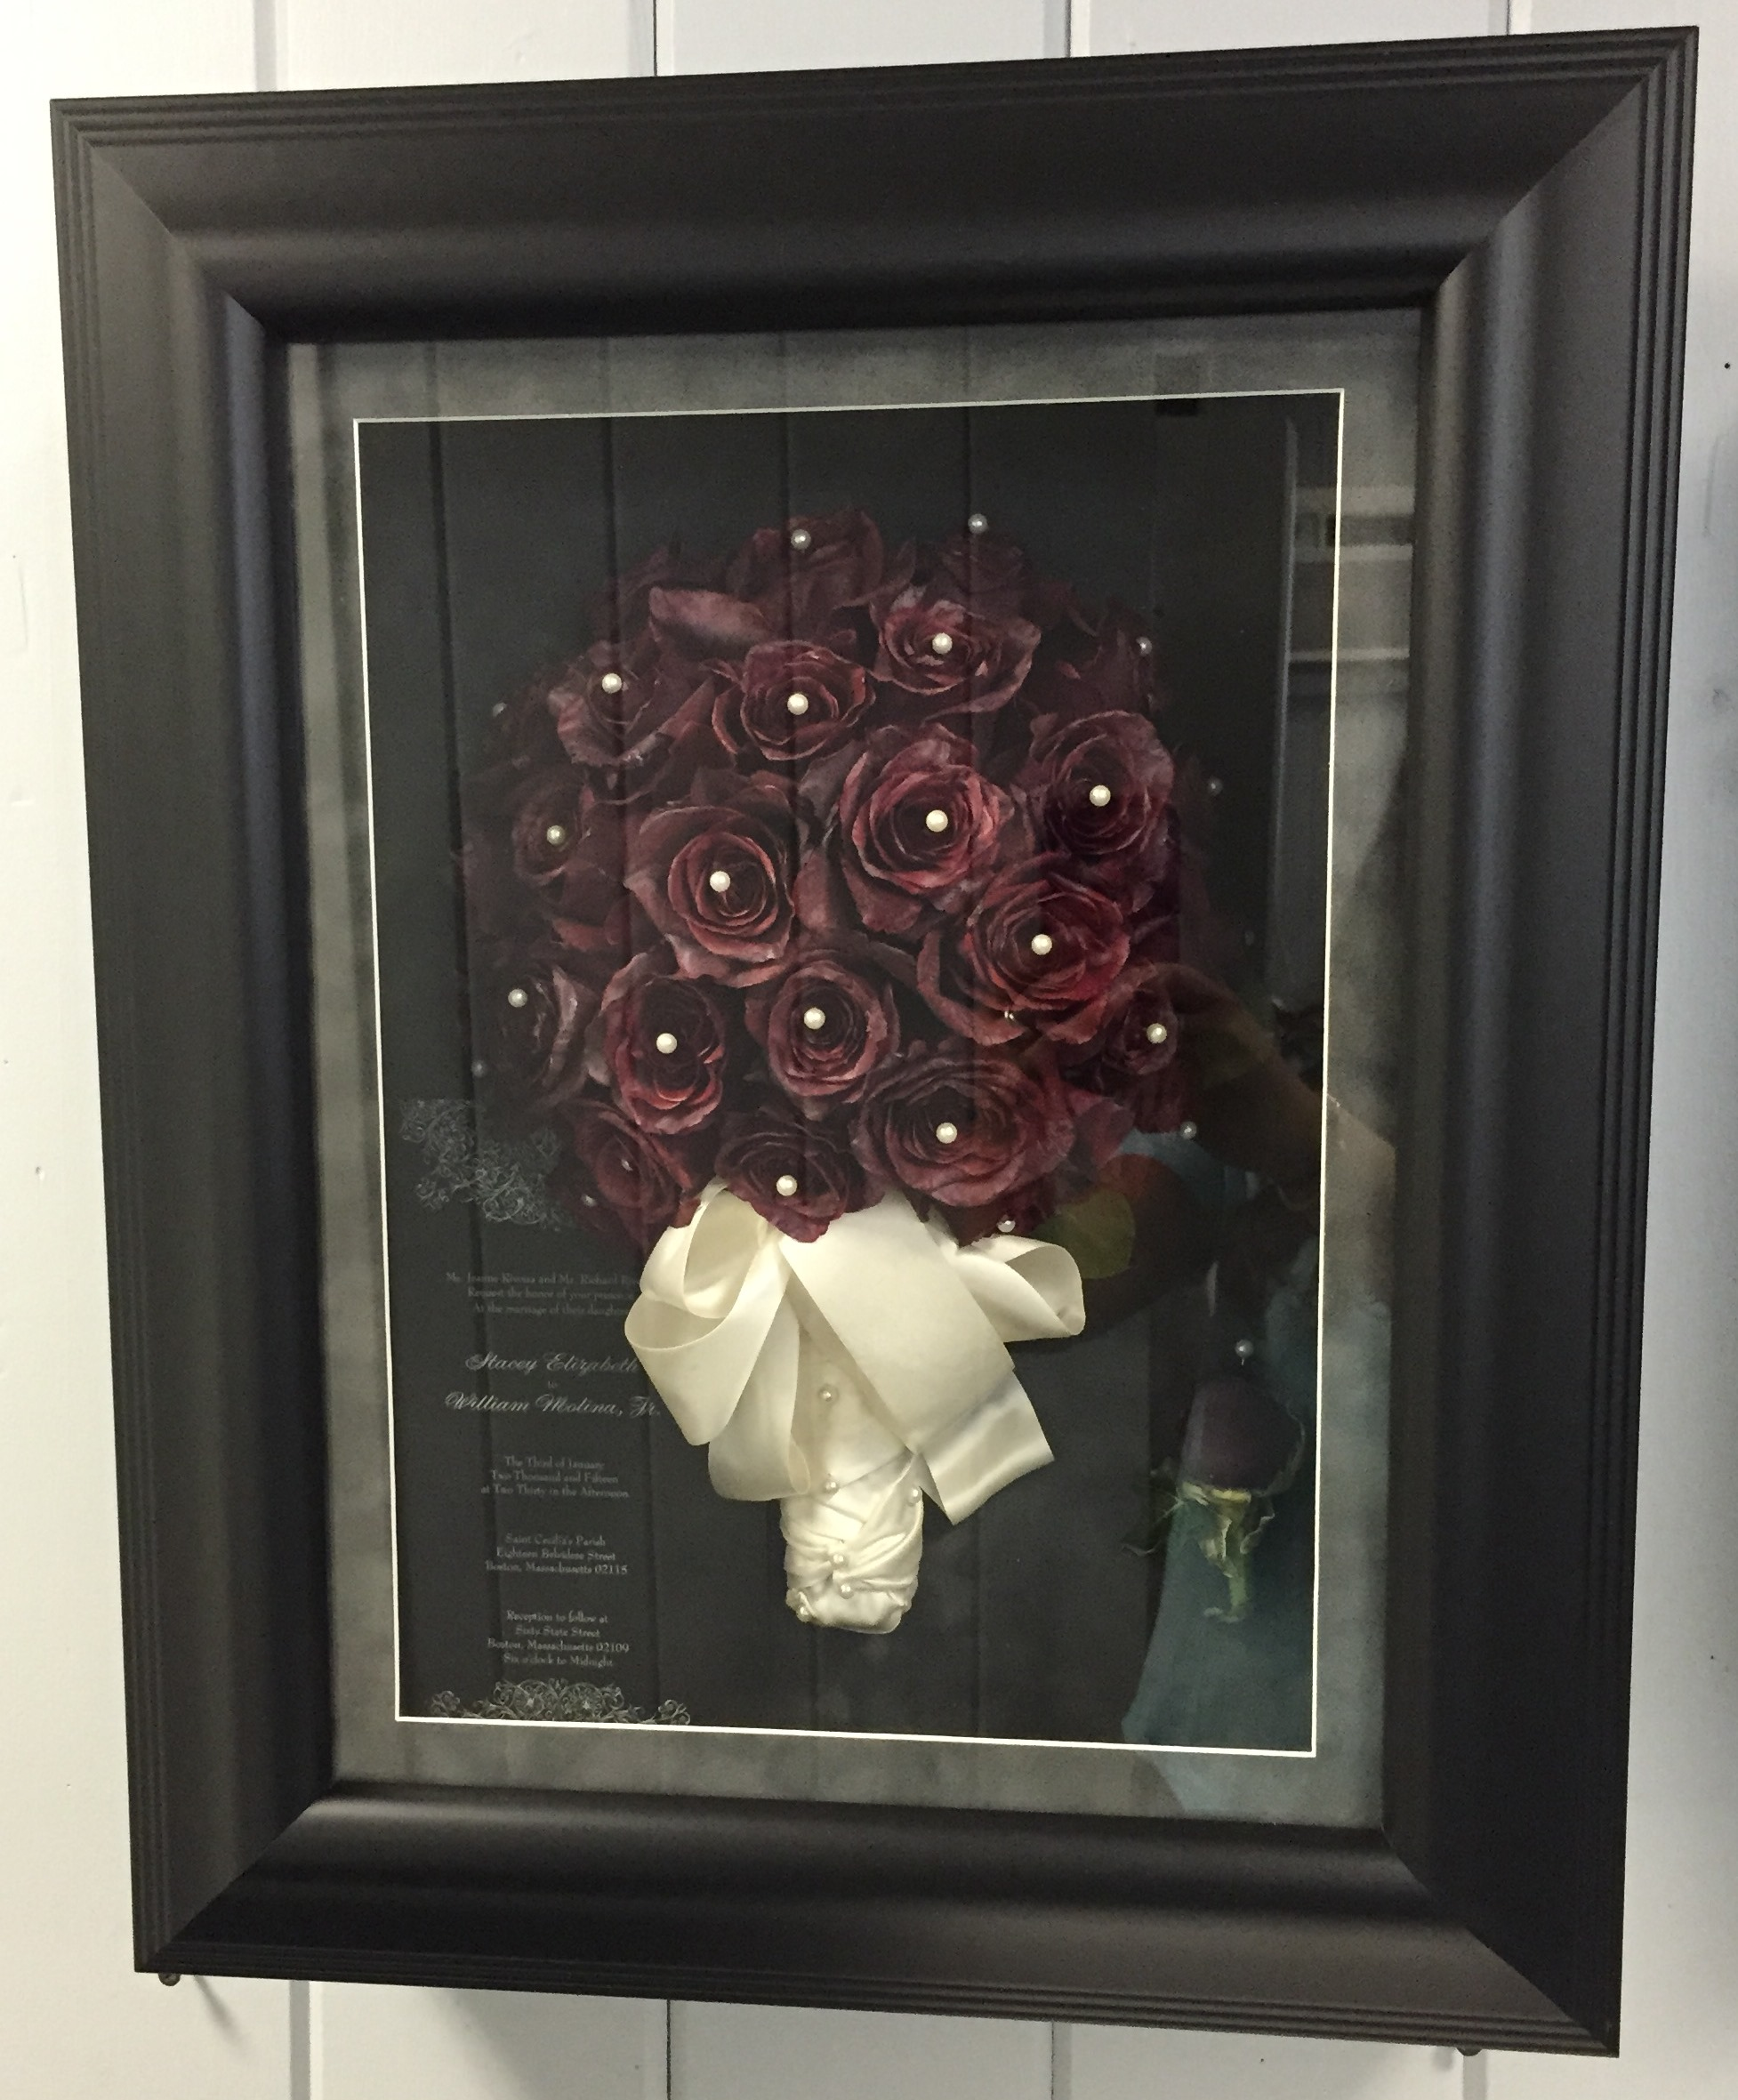 16x20 REC 65 Shadow Box Black